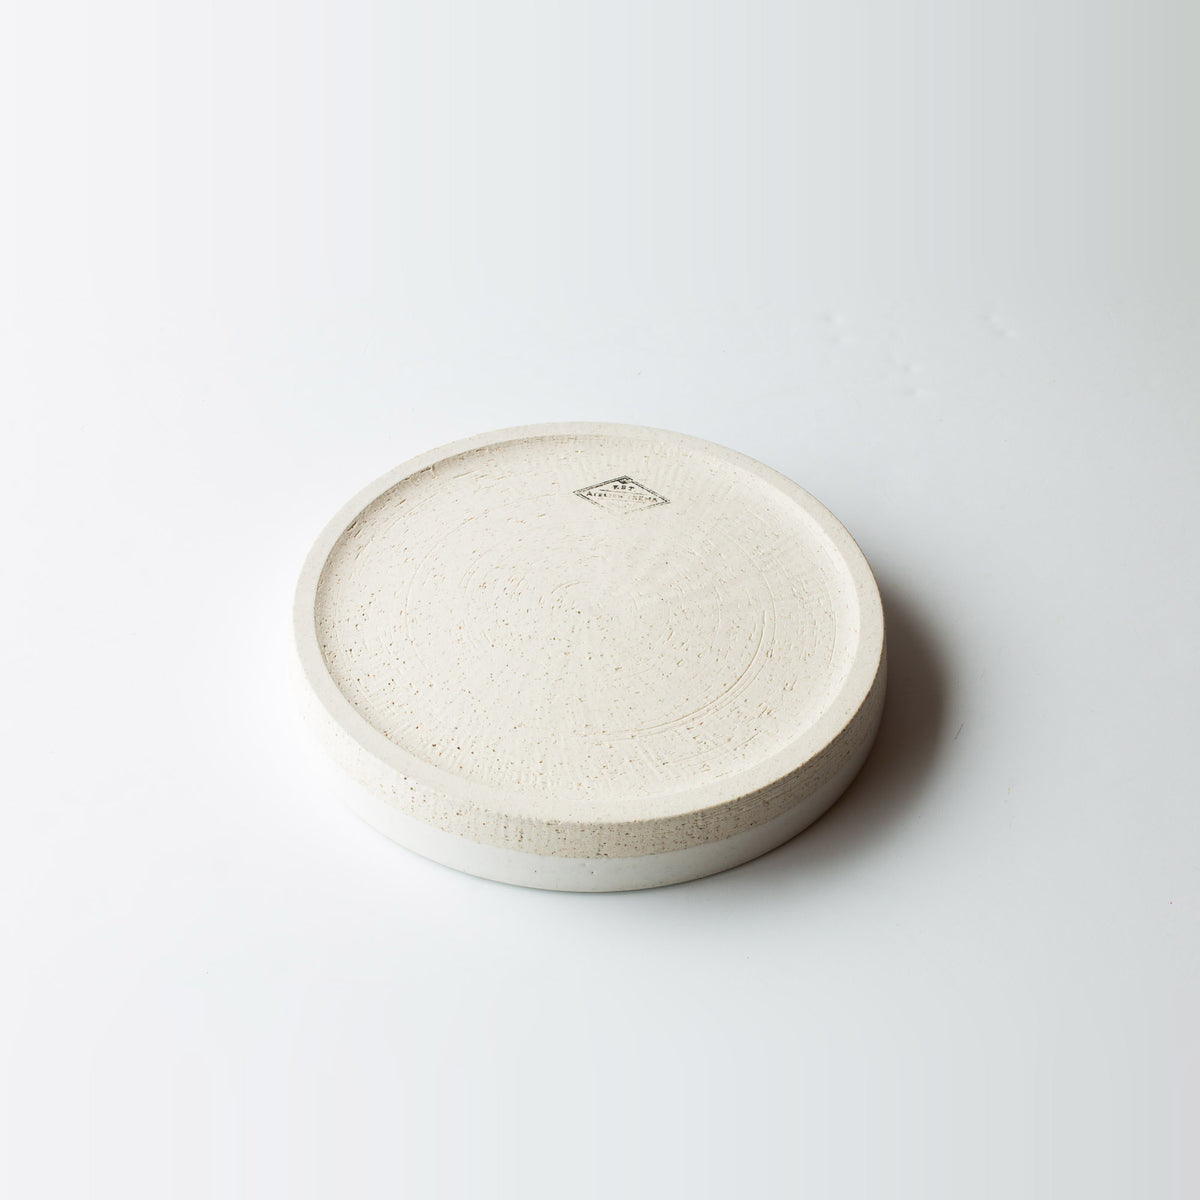 Bottom View - Ceramic Handcrafted Round Oven Dish / Baking Dish - Sold by Chic & Basta